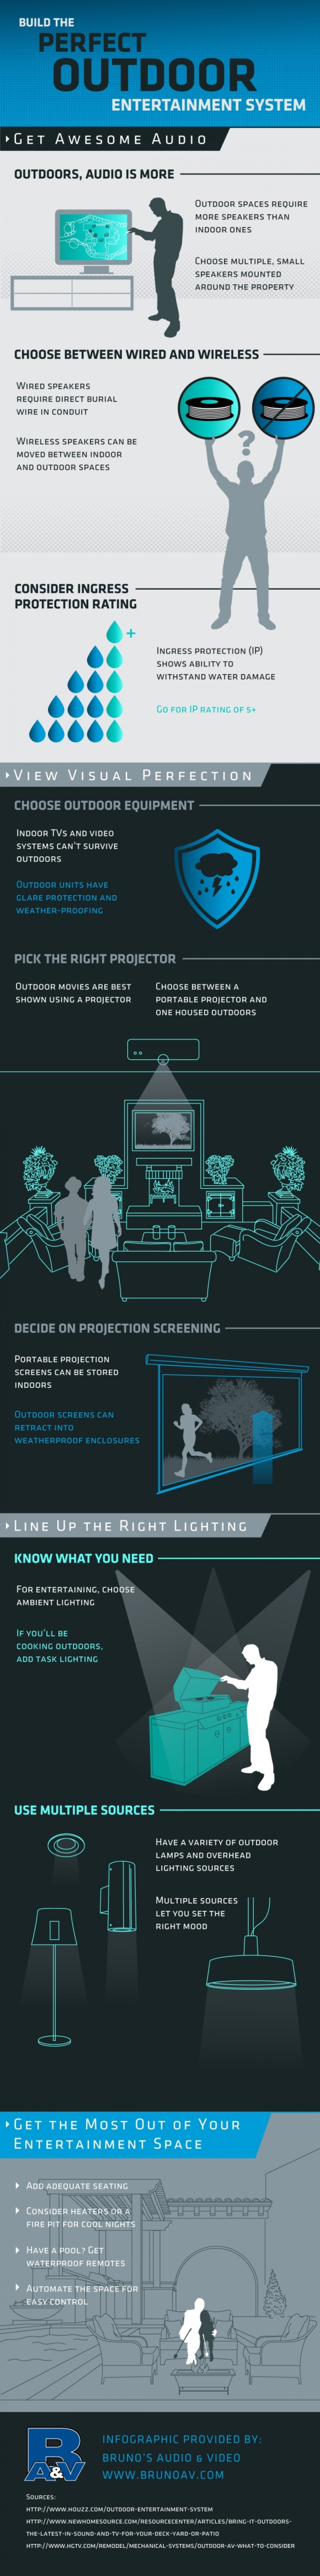 Build the Perfect Outdoor Entertainment System  Infographic